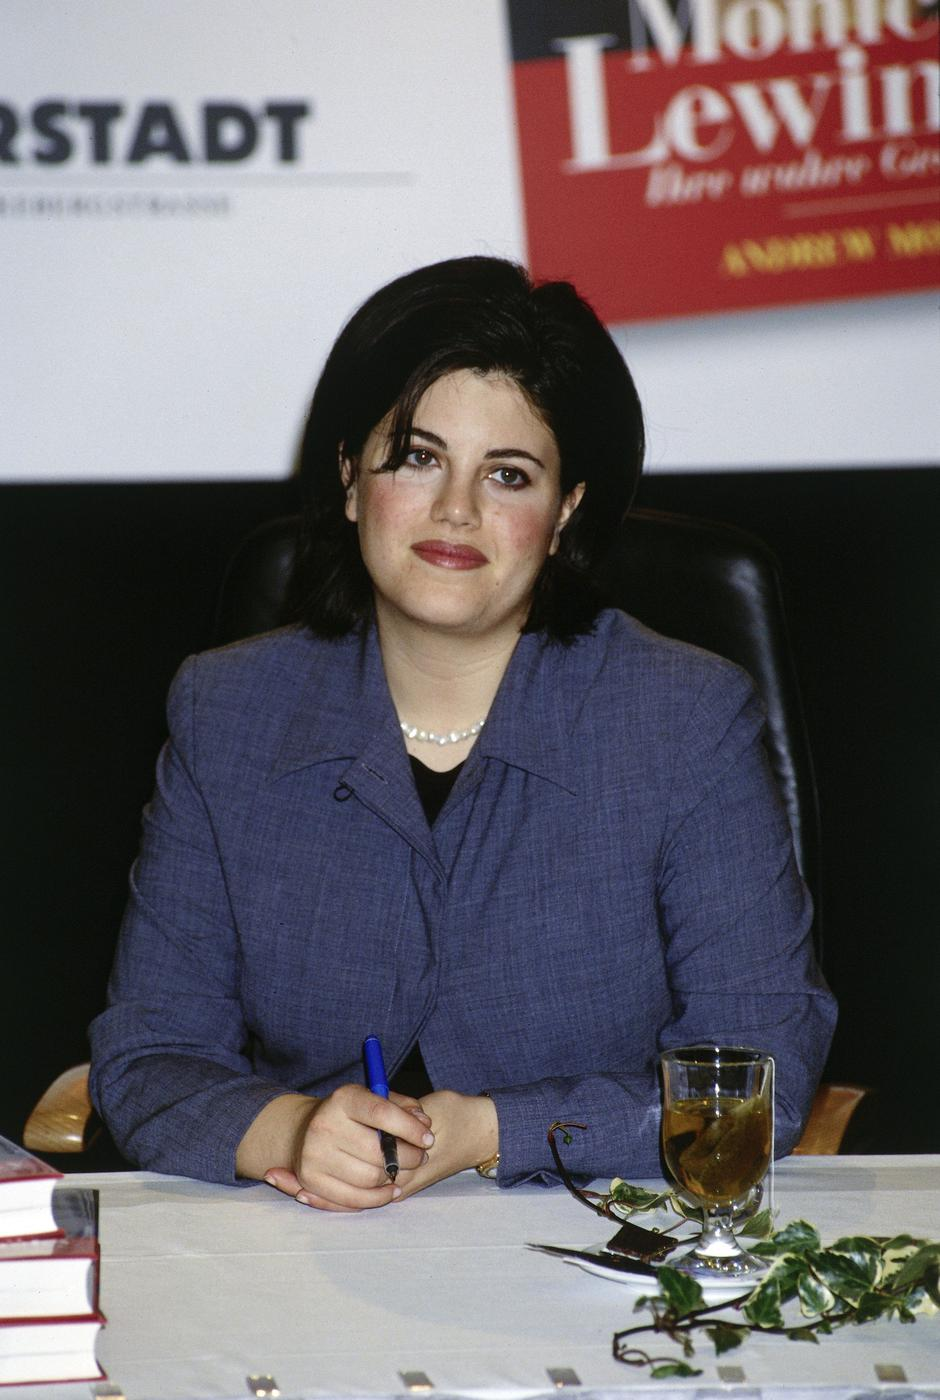 Lewinsky, Monica Samille, * 23.7.1973, US intern at the White House, half length, at autograph session during book launch, 1999, | Autor: Profimedia